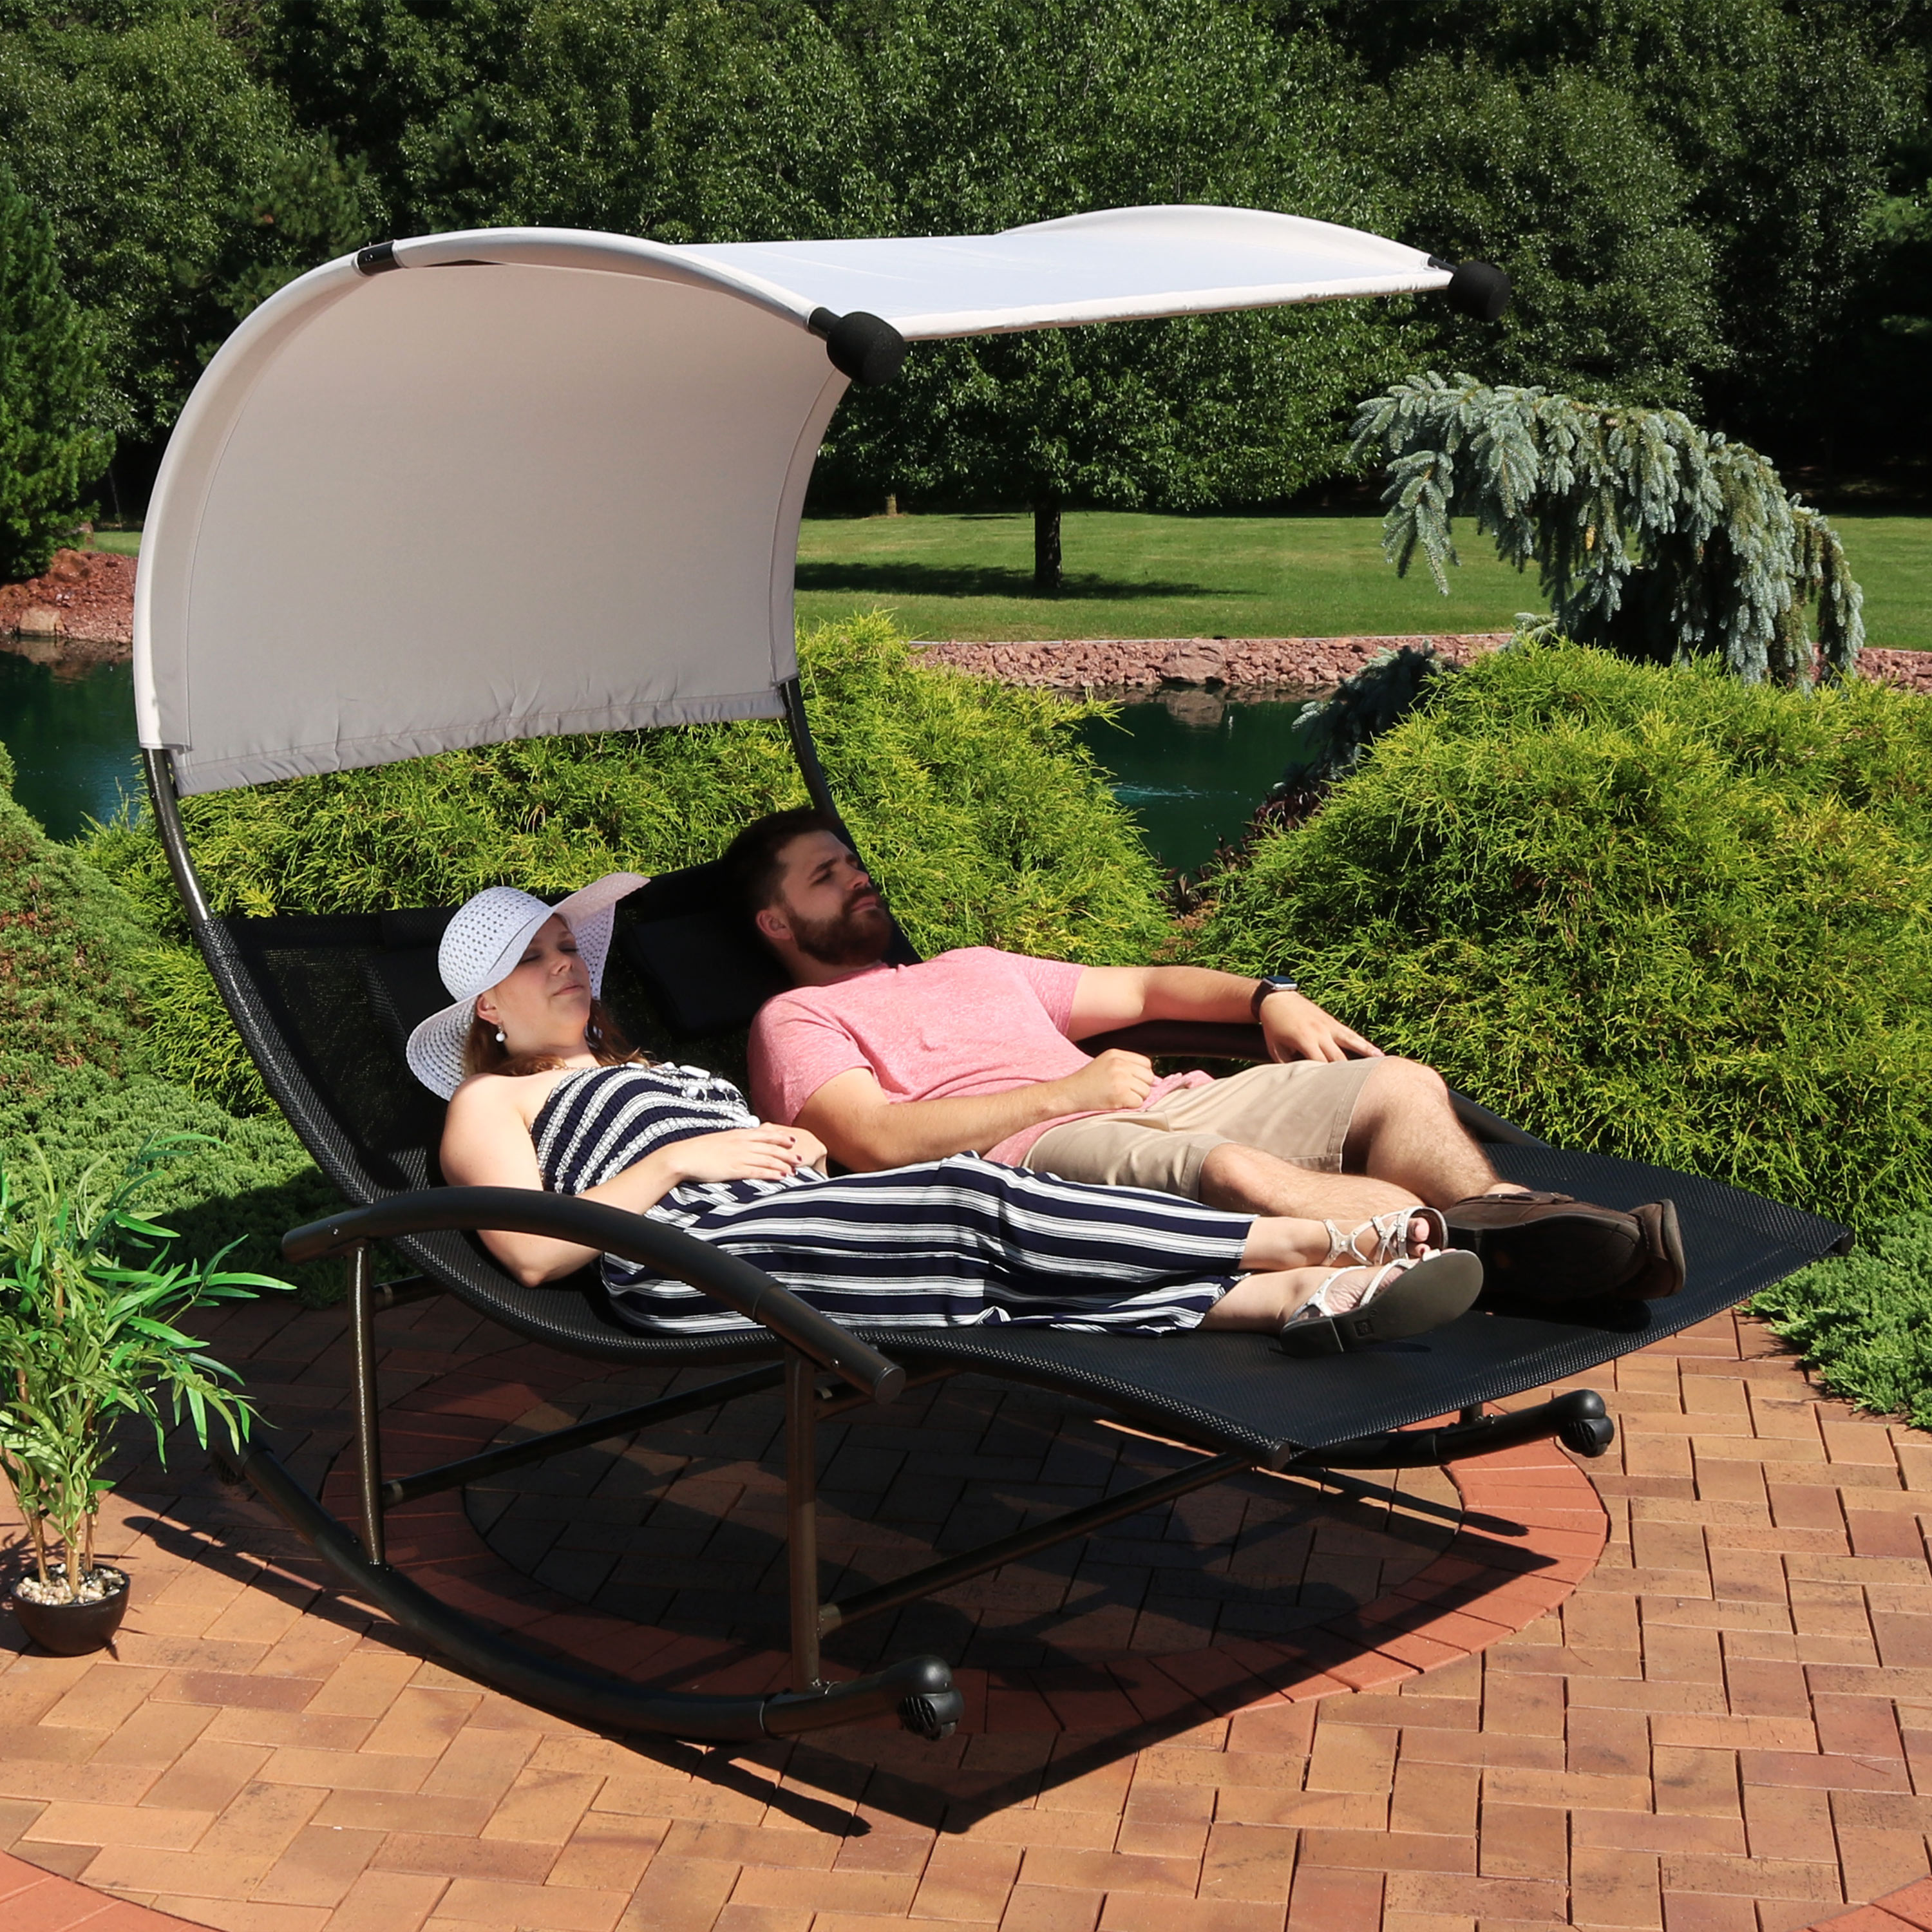 Awesome Sunnydaze Outdoor Double Chaise Rocking Lounge Chair With Canopy Shade And Headrest Pillows Portable Patio Sun Lounger Black Bralicious Painted Fabric Chair Ideas Braliciousco